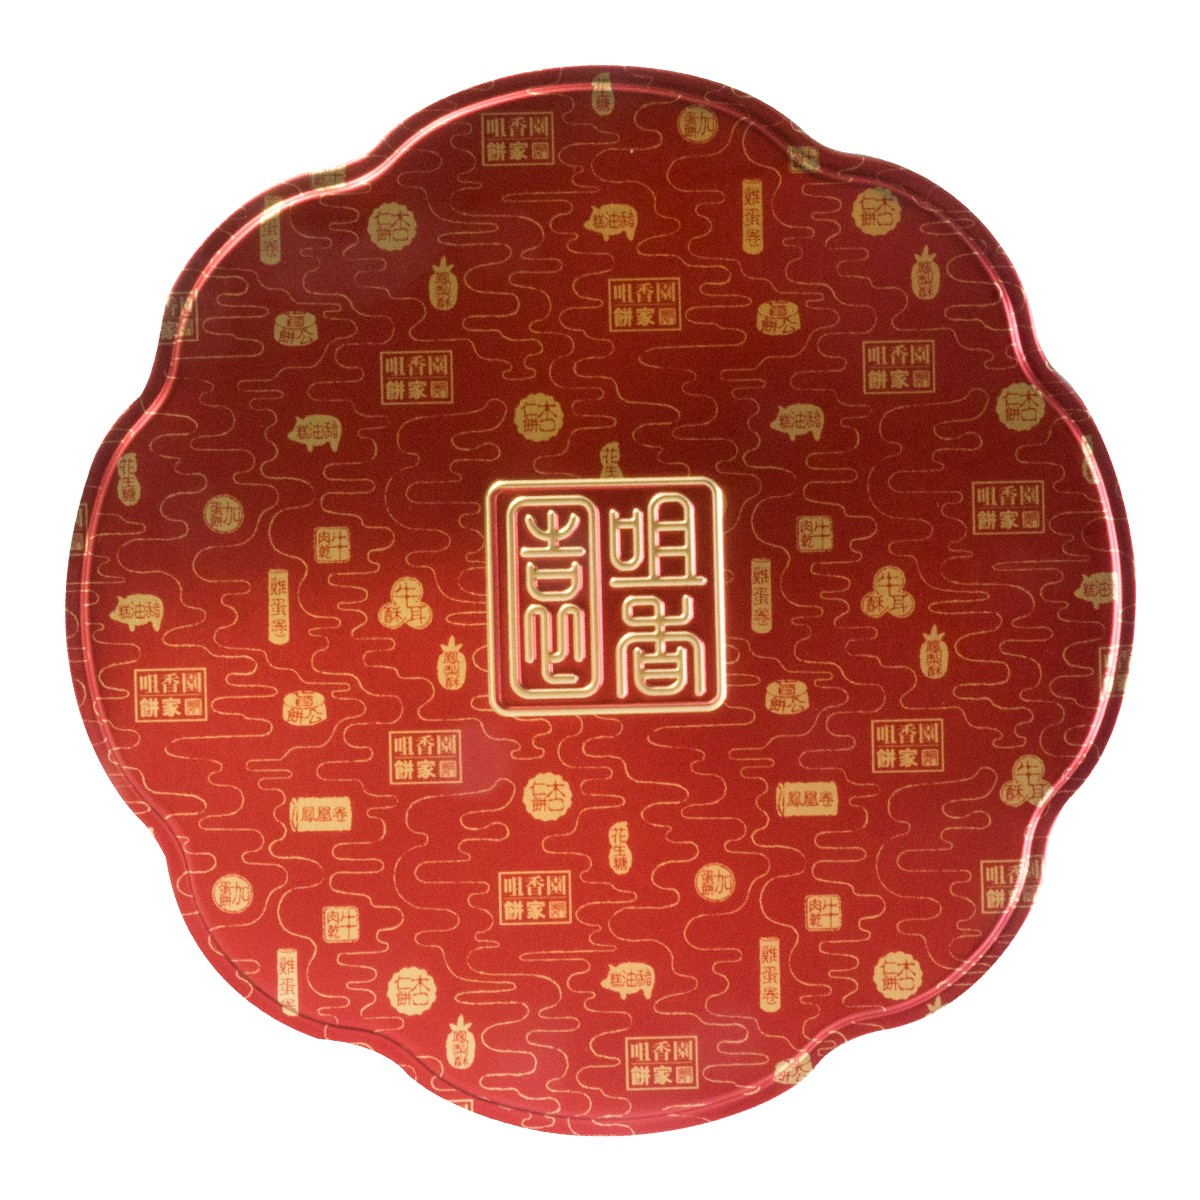 CHOI HEONG YUEN BACKERY Almond Cakes Biscuits Aux Amandes 300g